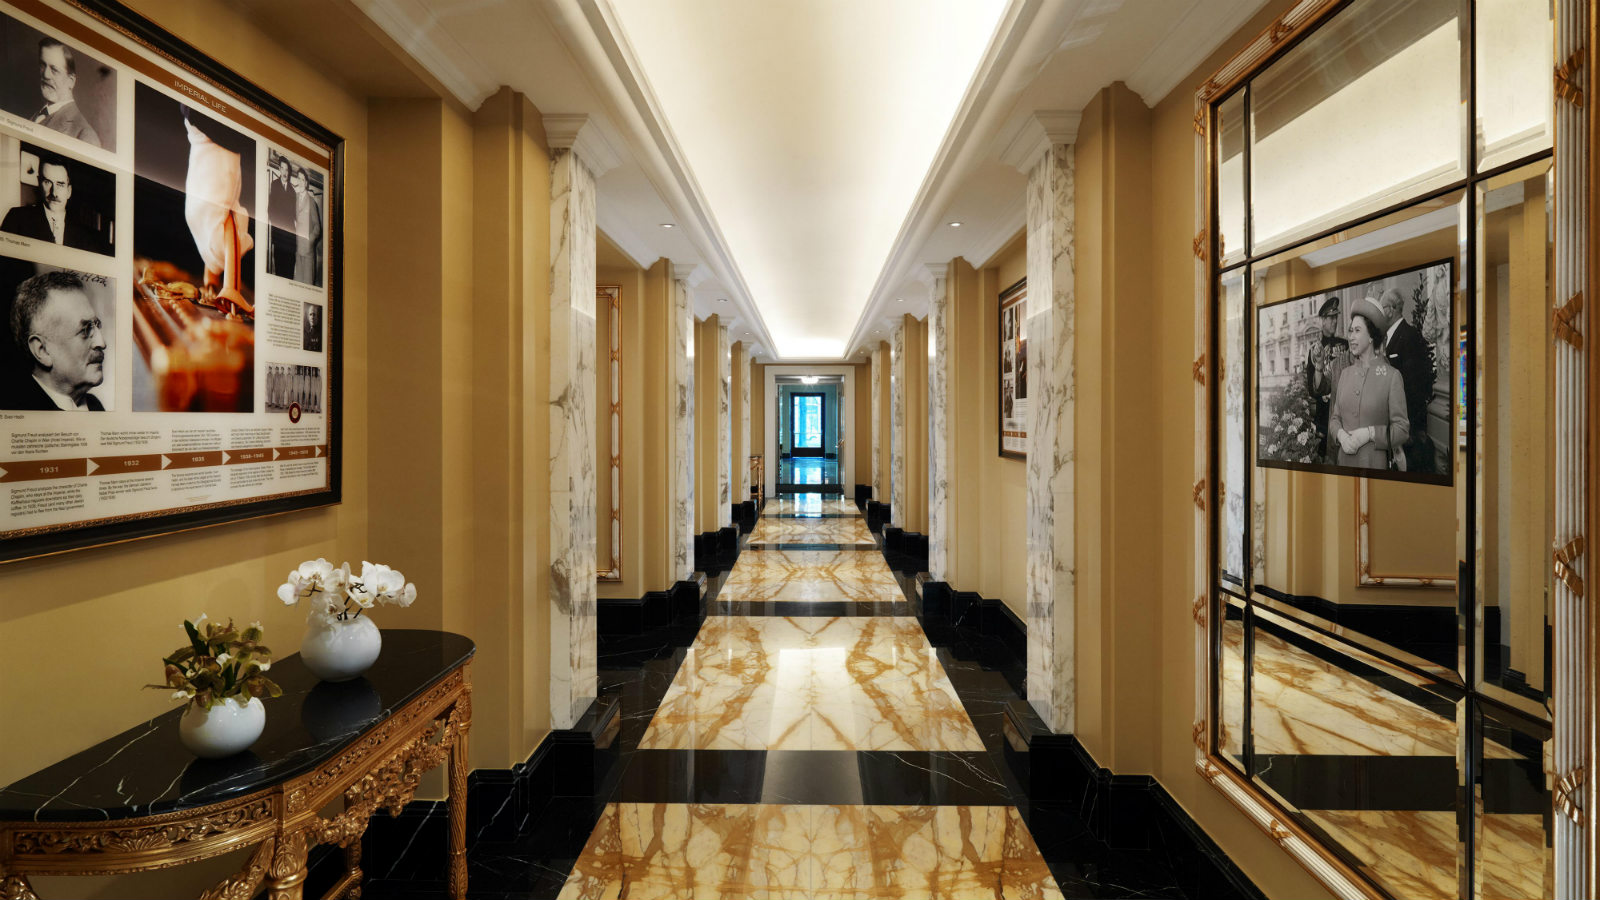 Hotel Imperial Vienna - Walk of History